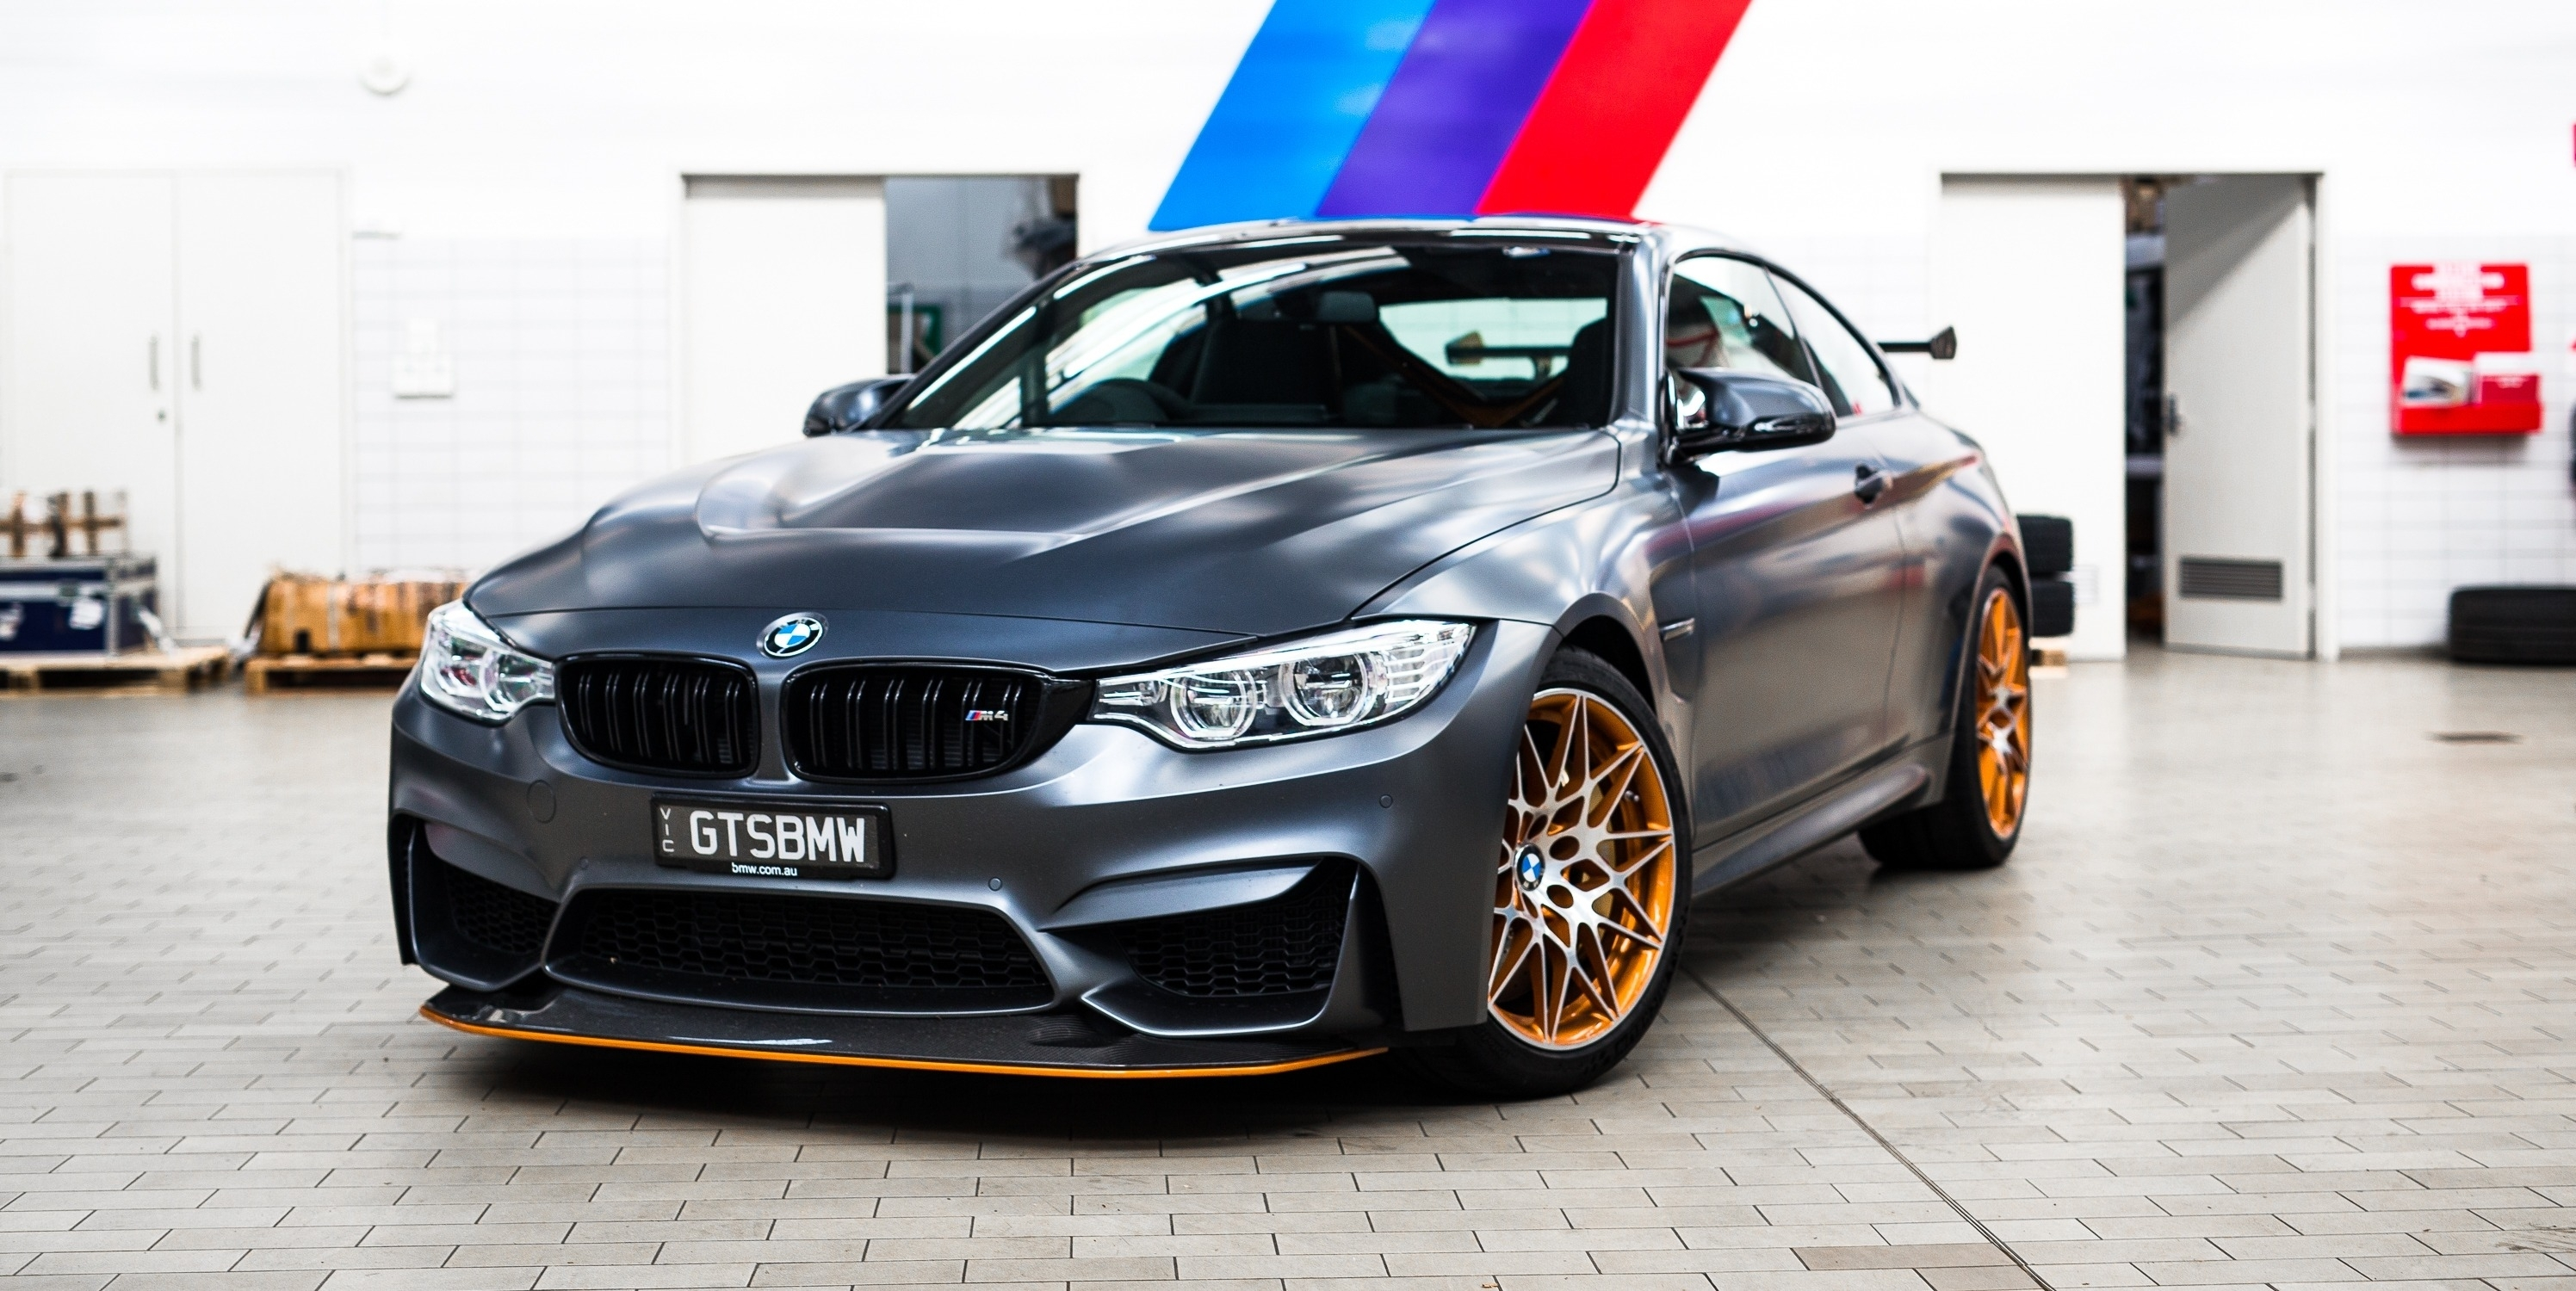 98 A 2019 BMW M4 Gts Performance and New Engine